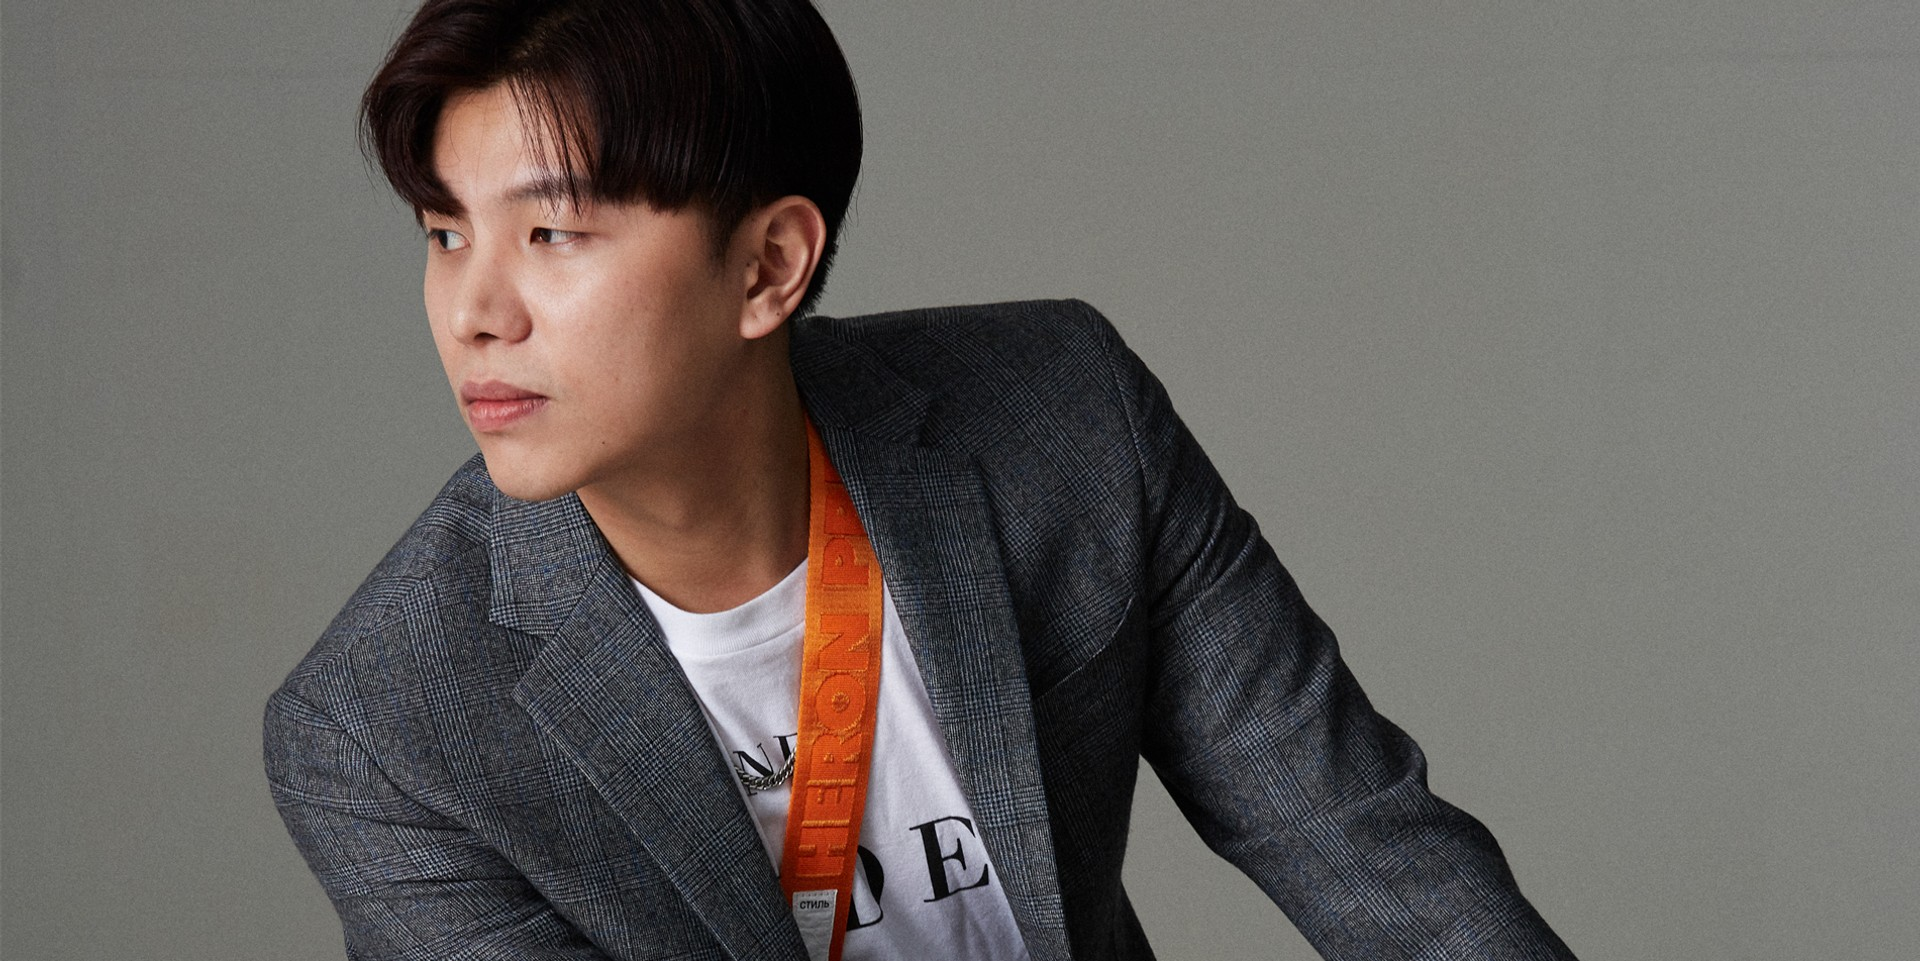 Local Mandopop and K-pop songwriter Gen Neo to hold first live showcase in Singapore